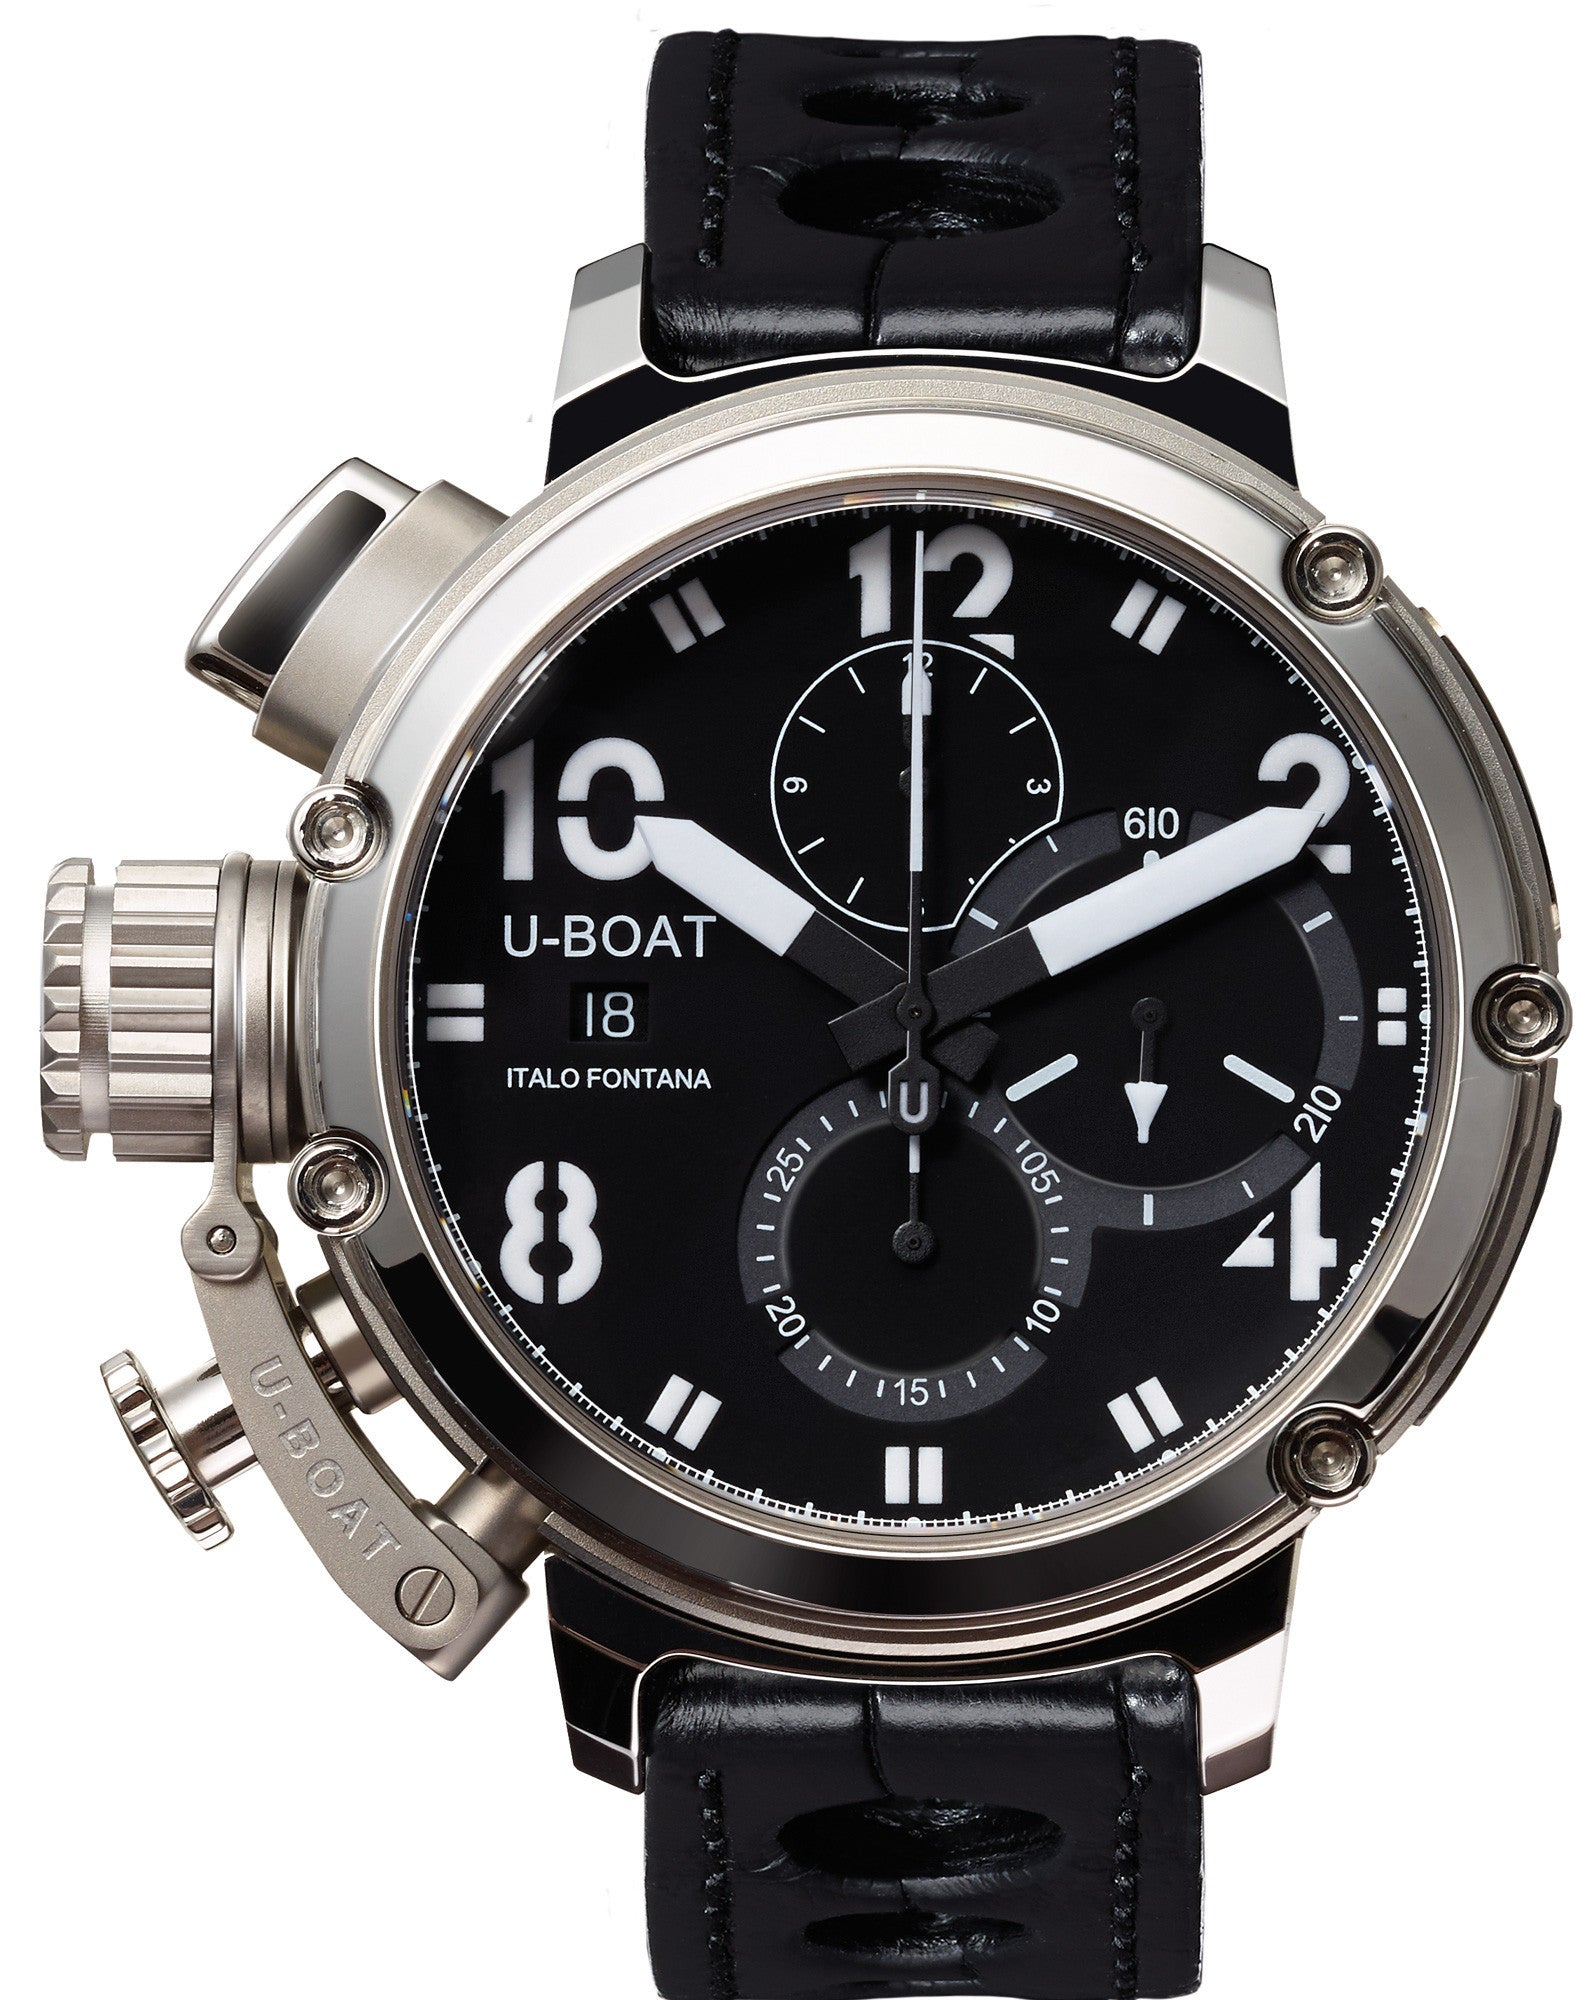 Limited Edition Birthday Collection: U-Boat Watch Chimera 46 Sideview Limited Edition D 7224 Watch